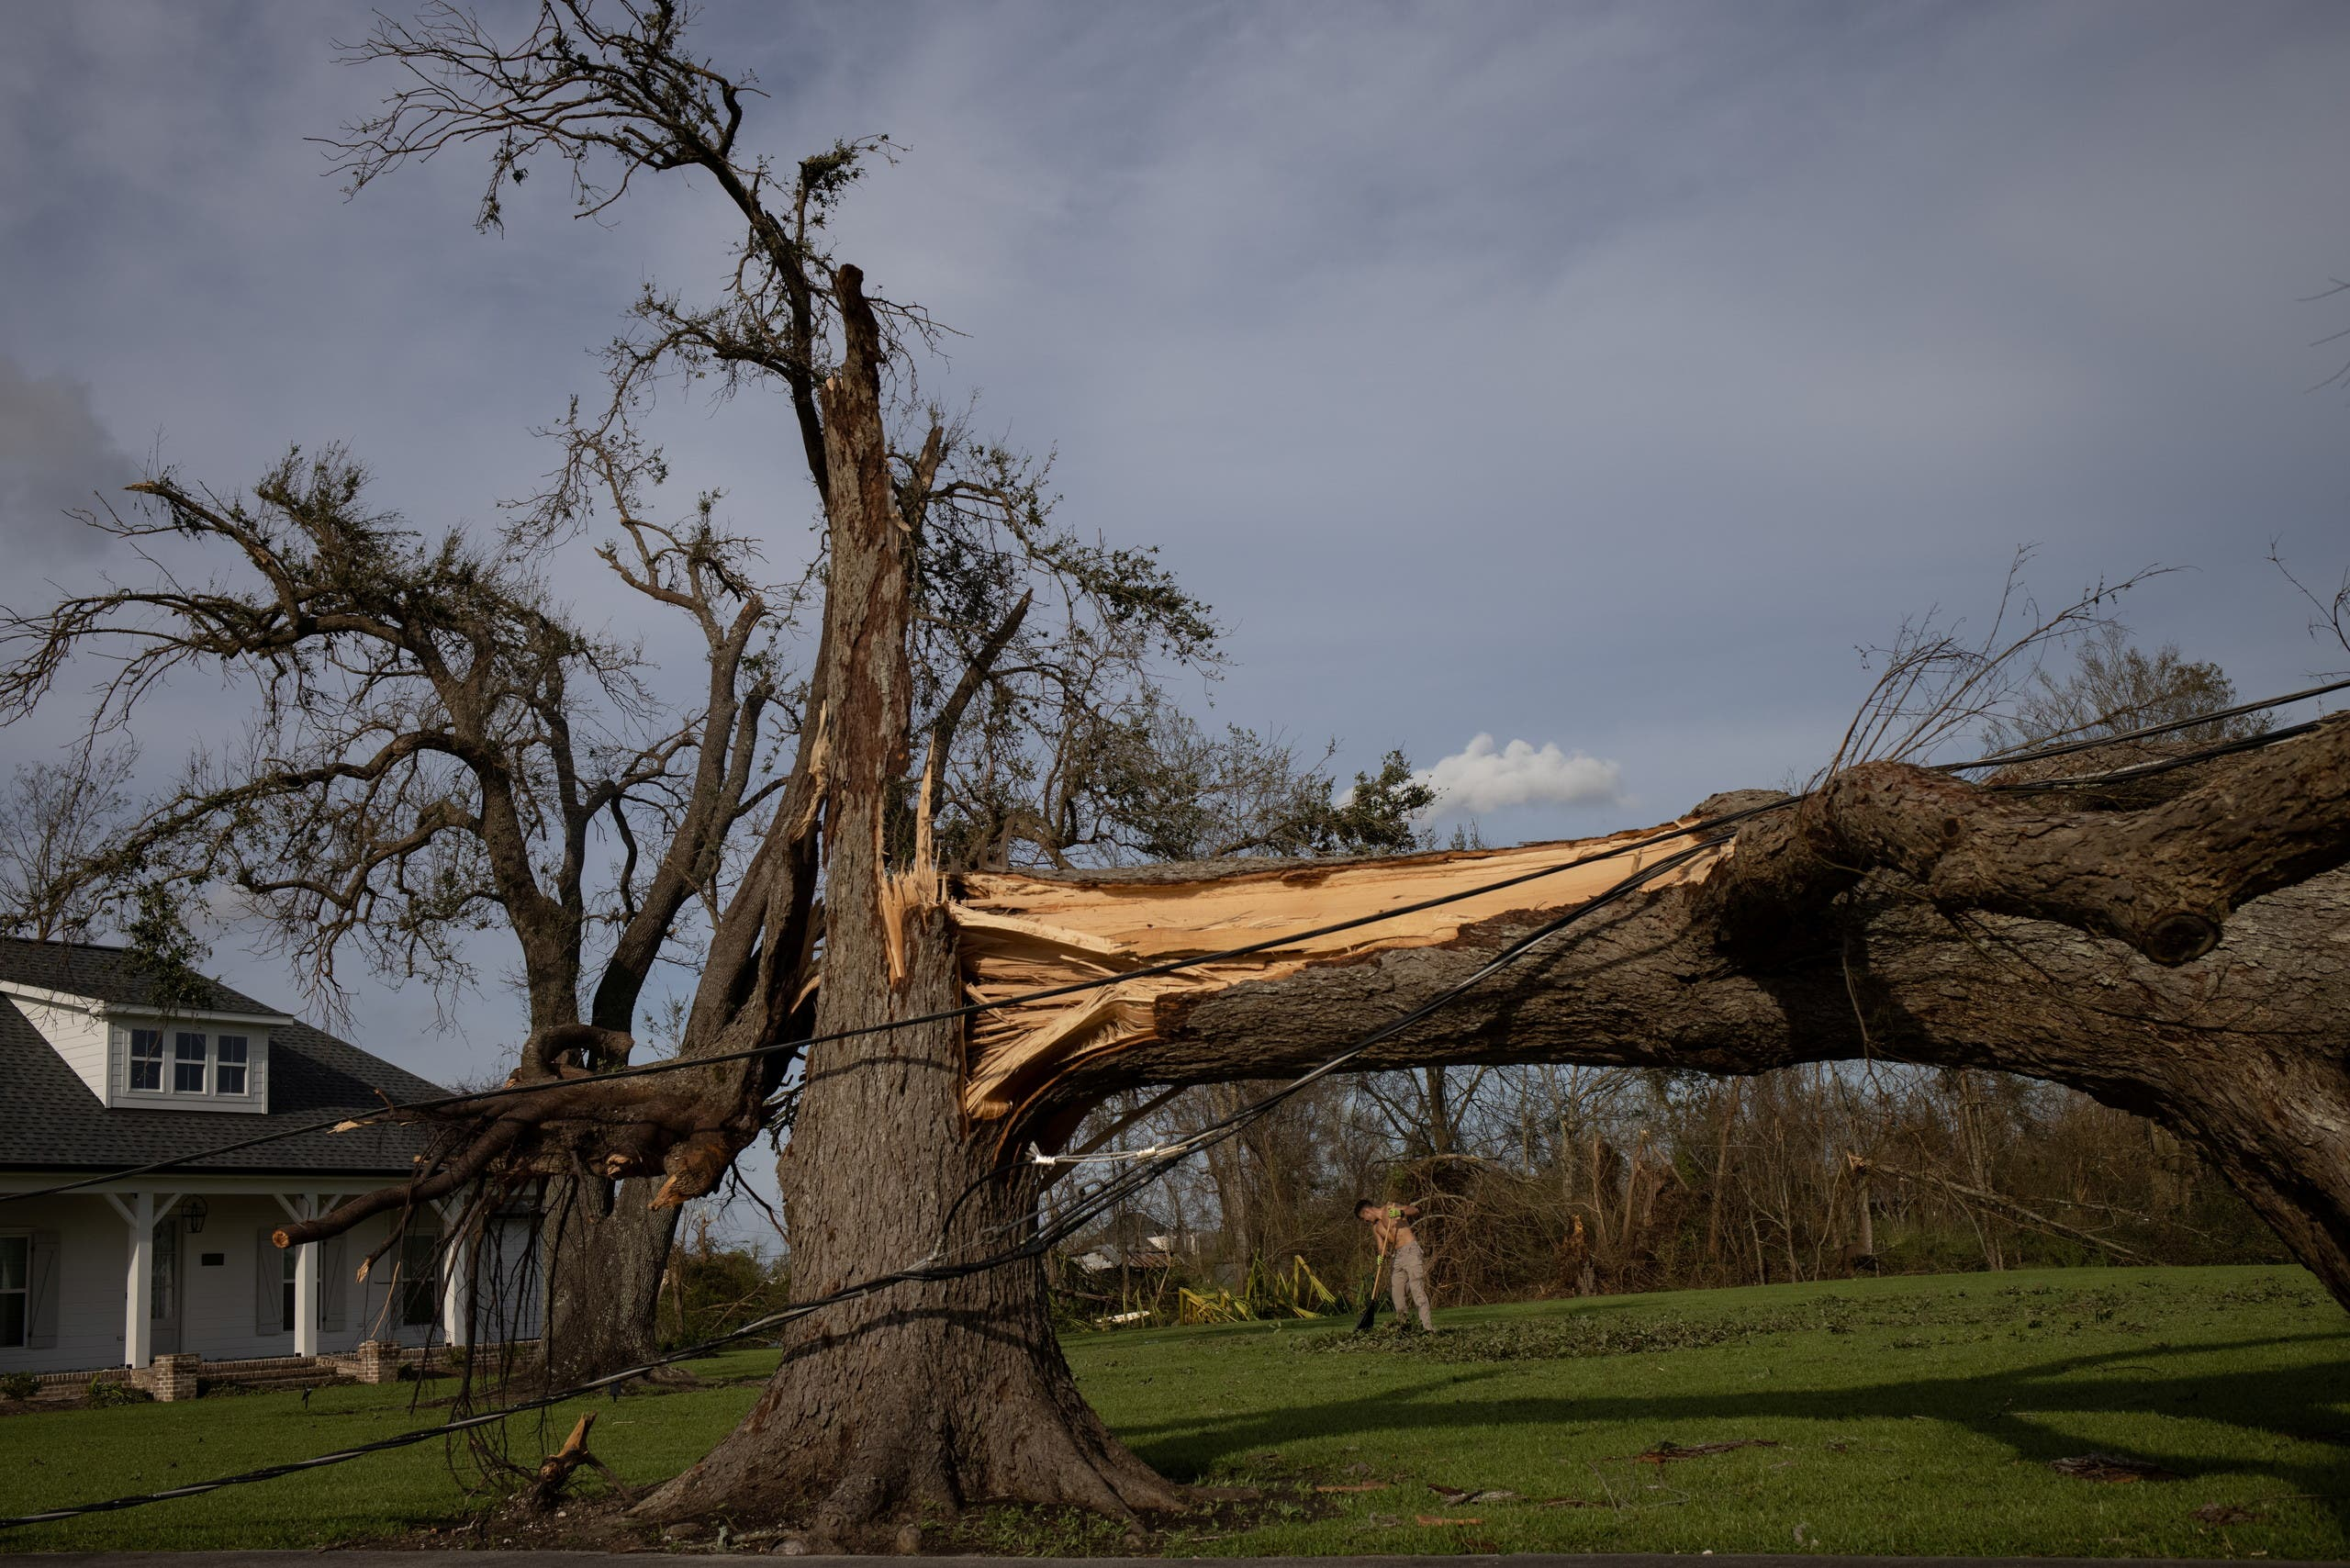 Local resident Kurt Charpentier rakes leaves past a fallen tree in his yard in the aftermath of Hurricane Ida in Bourg, Louisiana, US, August 30, 2021. (Reuters)